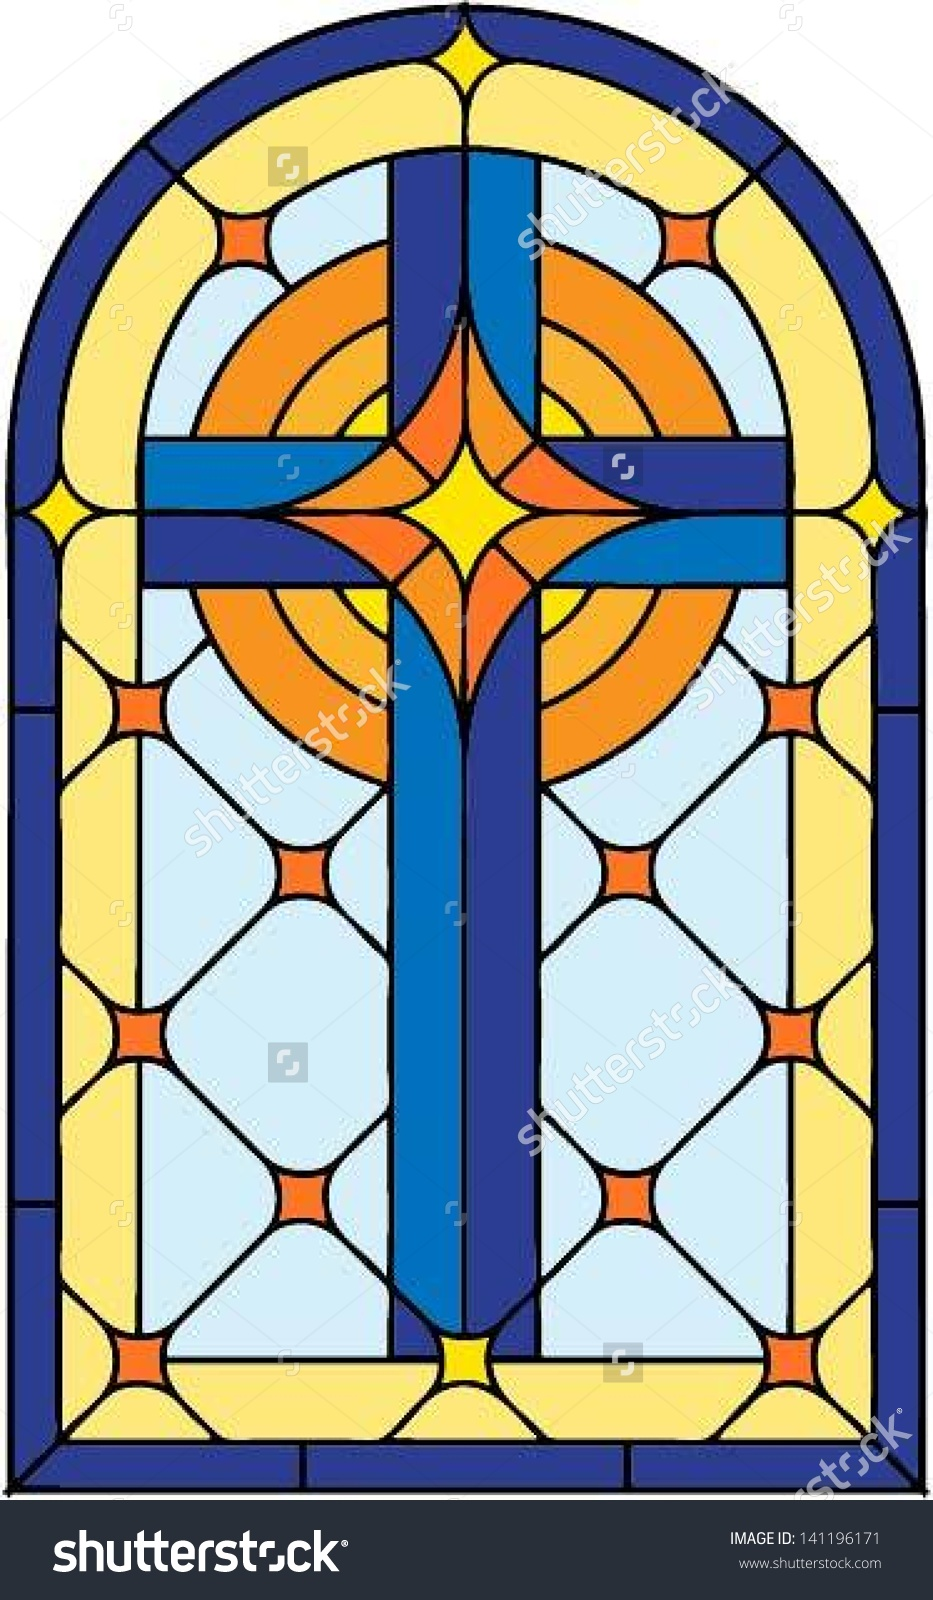 Stained Glass Clip Art : Stained glass window clipart clipground